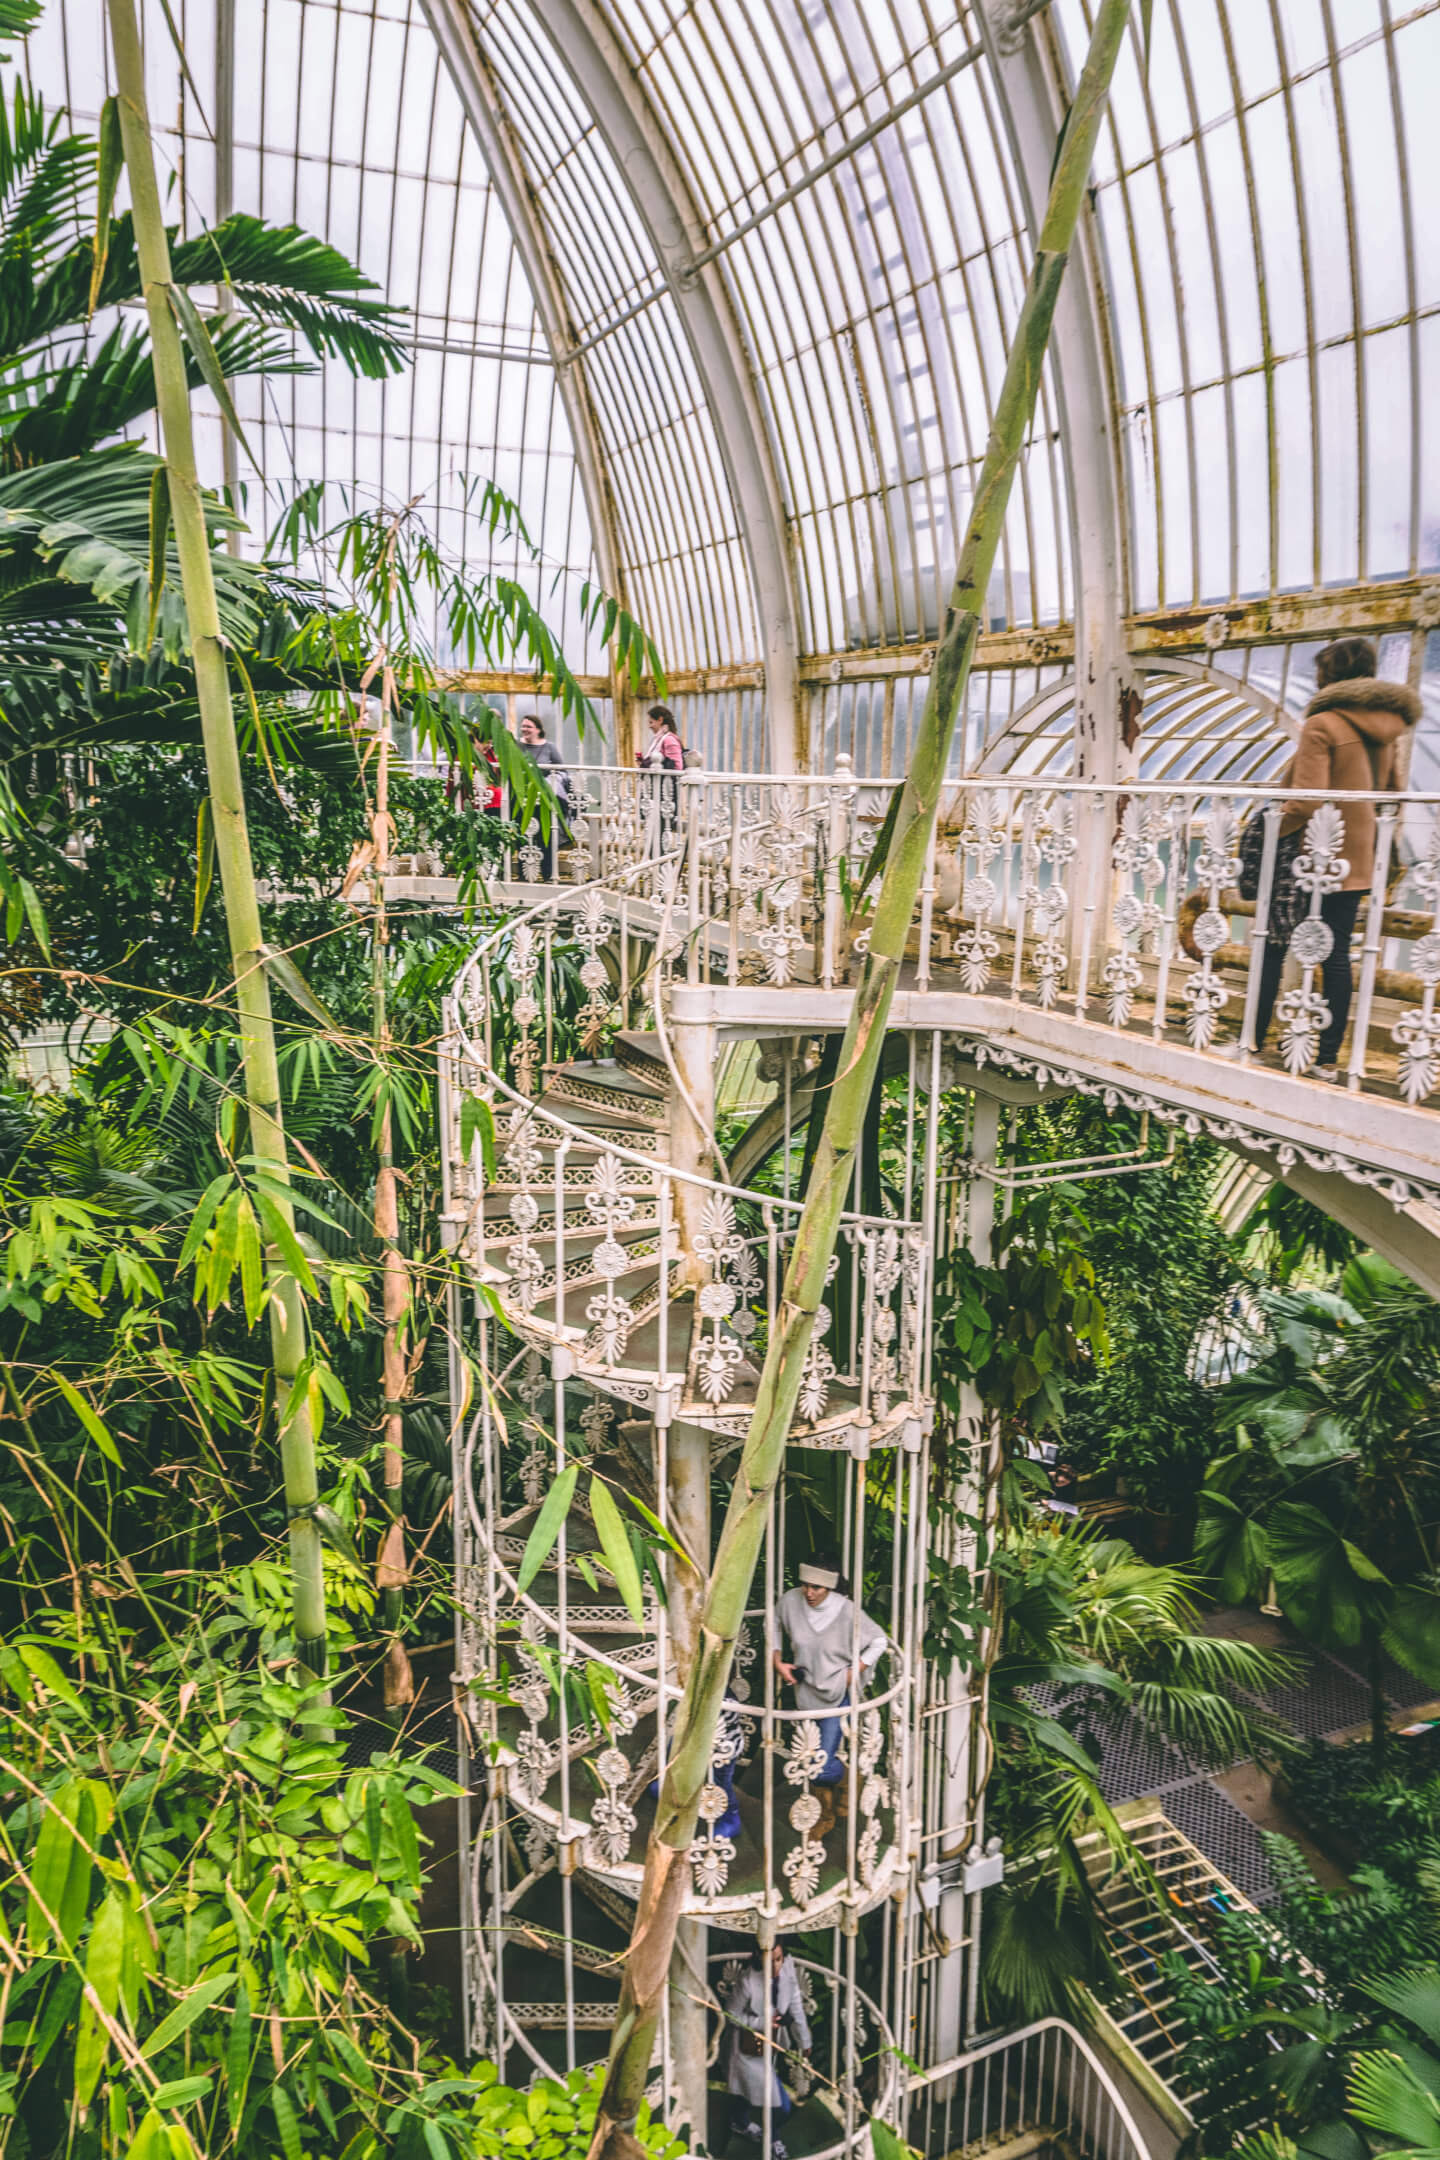 Victorian Iron Staircase in the Palm House, Kew Gardens